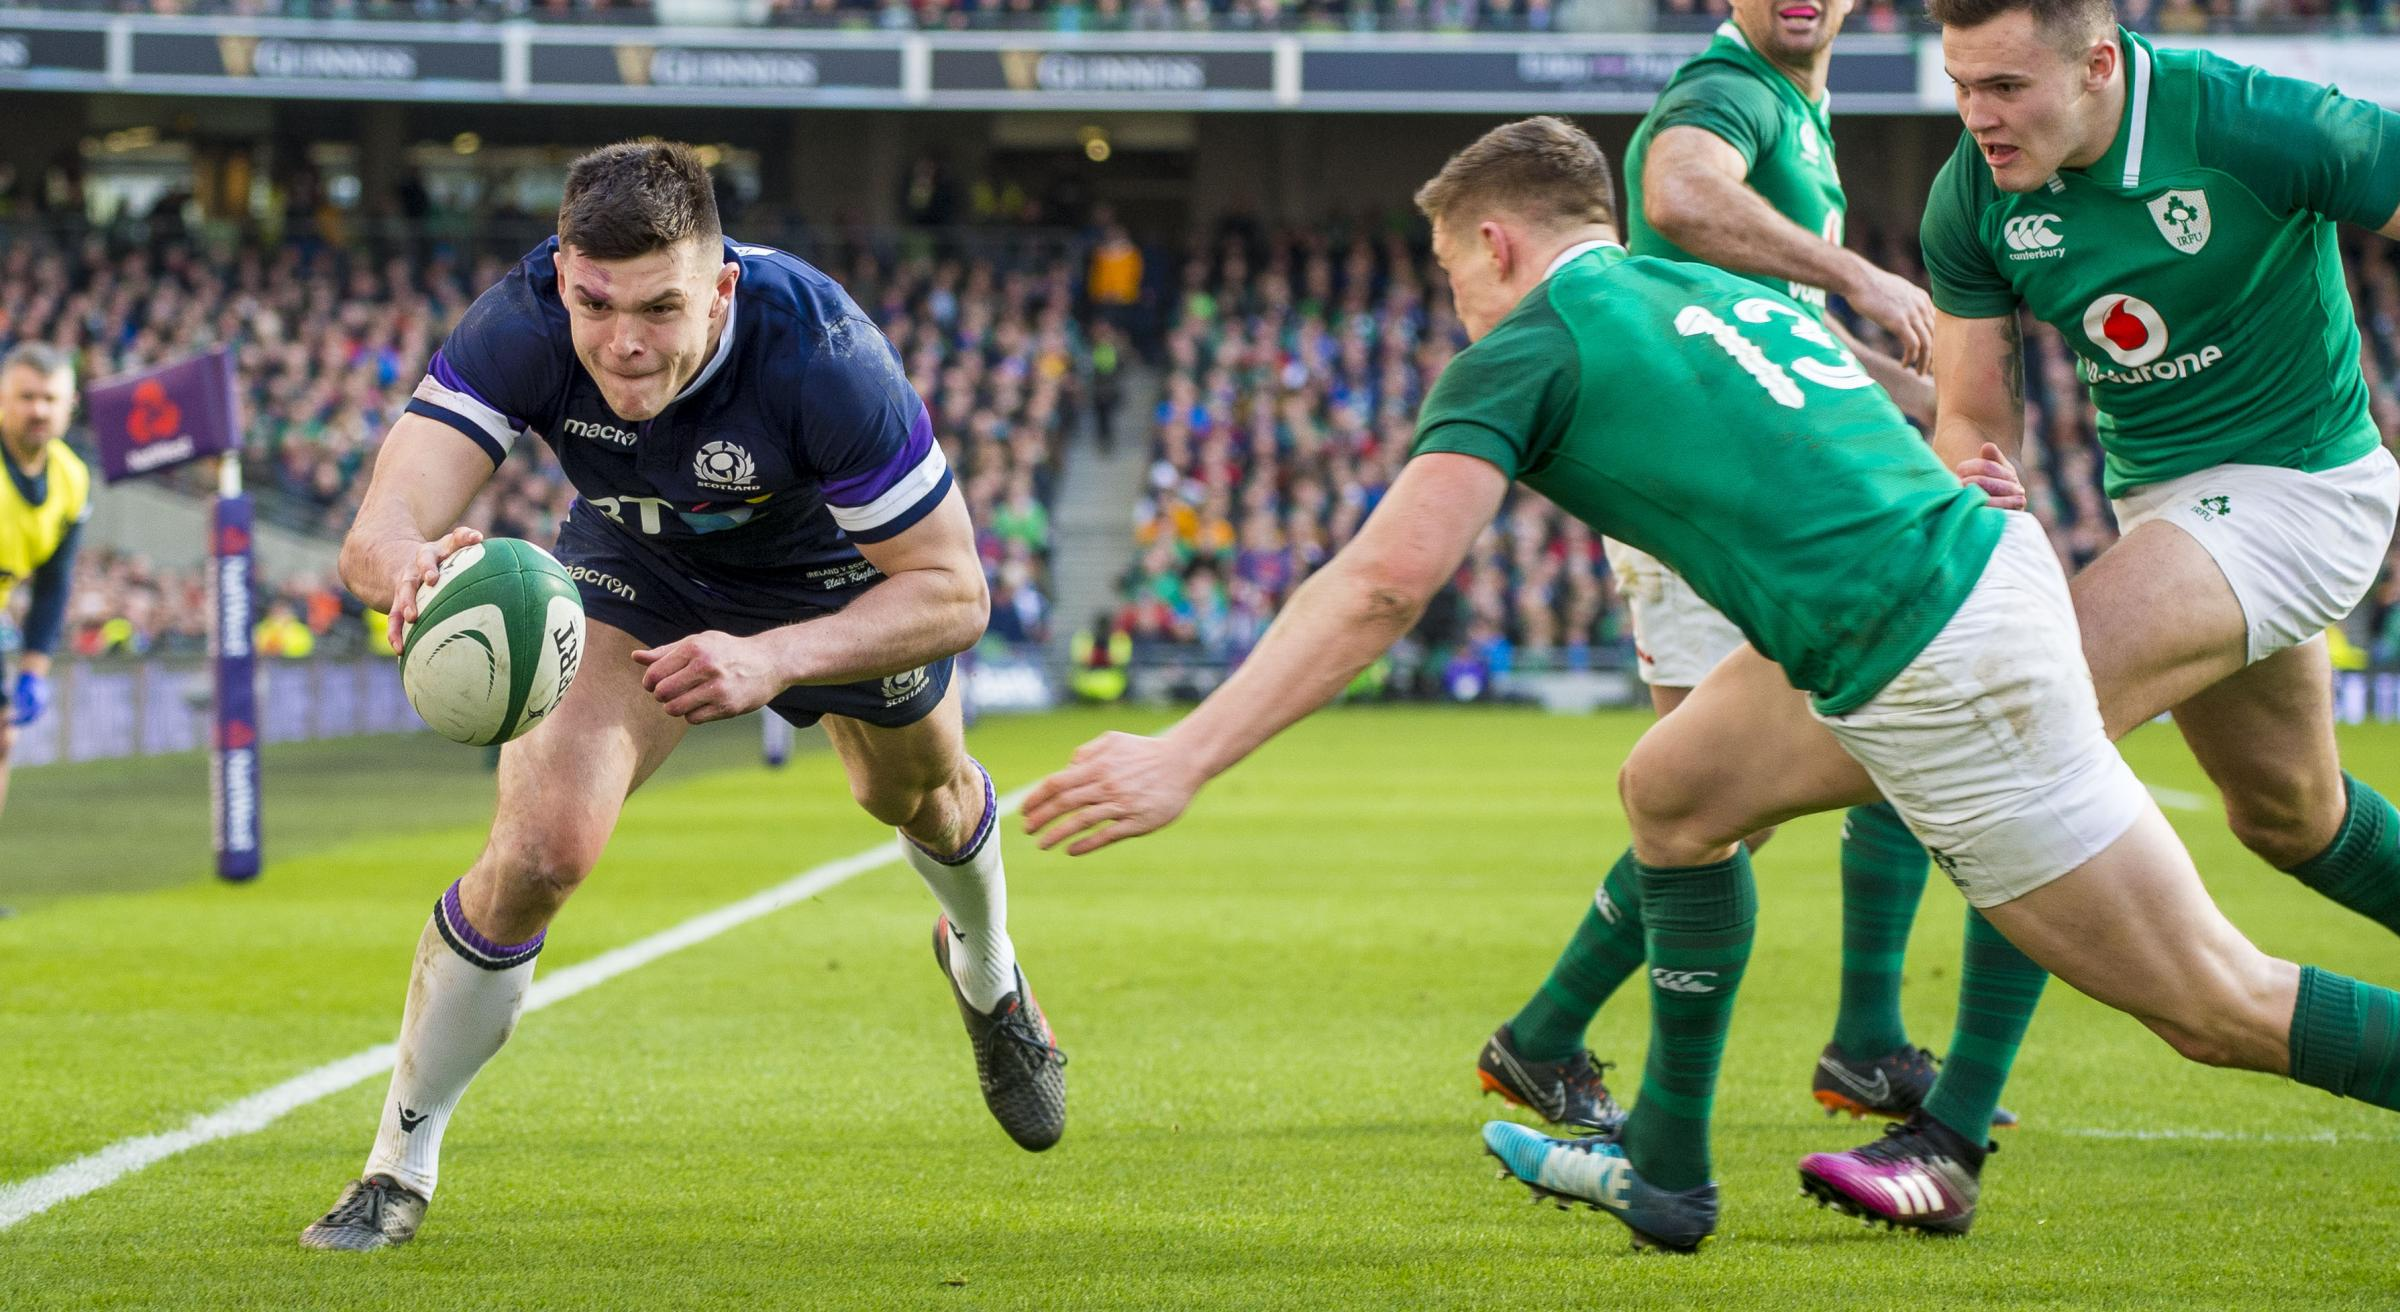 Blair Kinghorn in action for Scotland against Ireland during the Six Nations